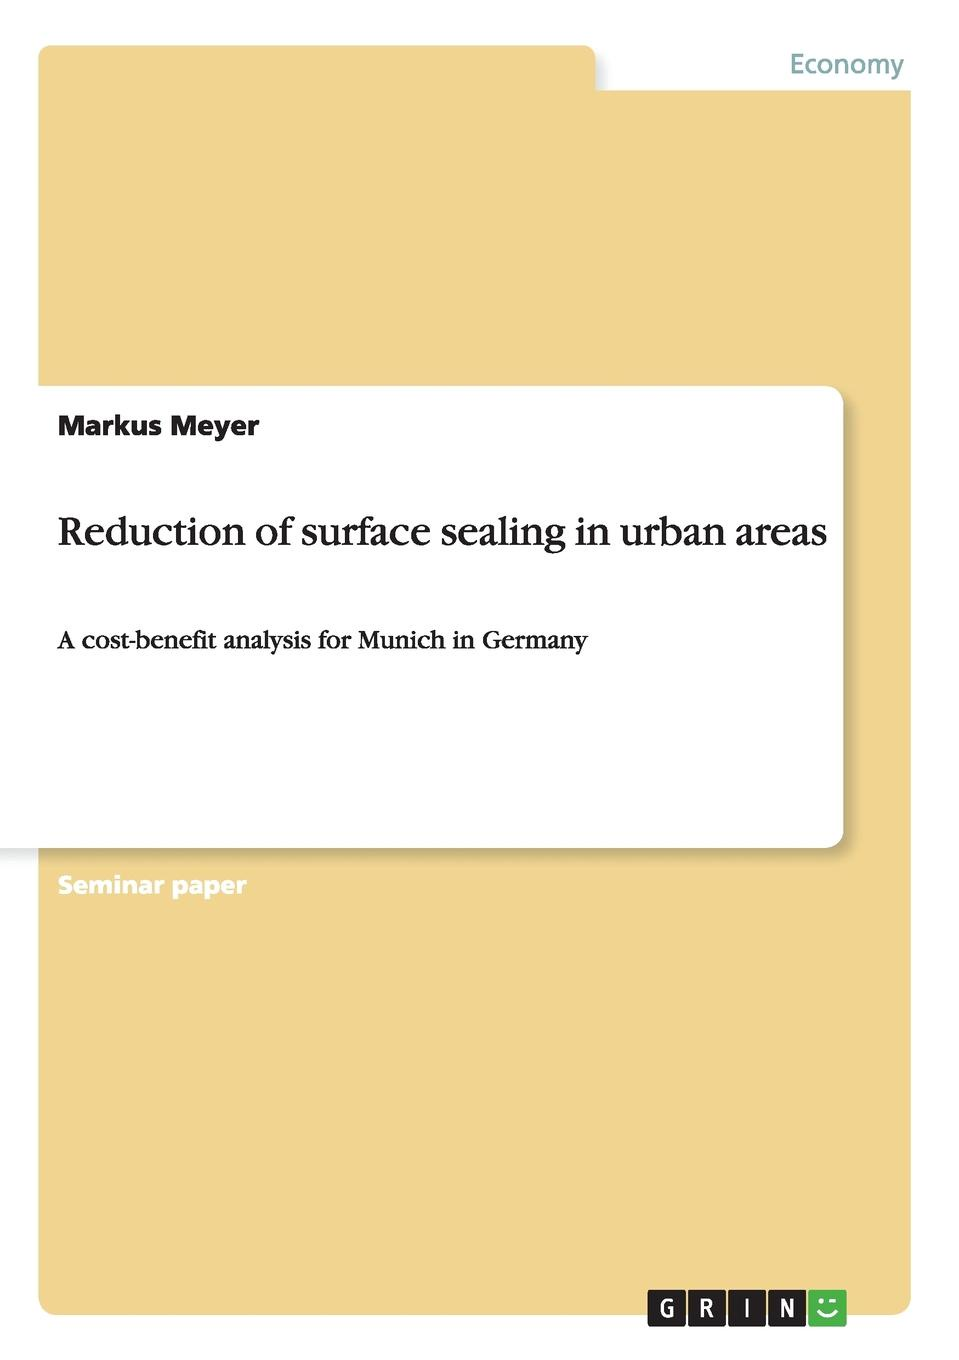 цена Markus Meyer Reduction of surface sealing in urban areas